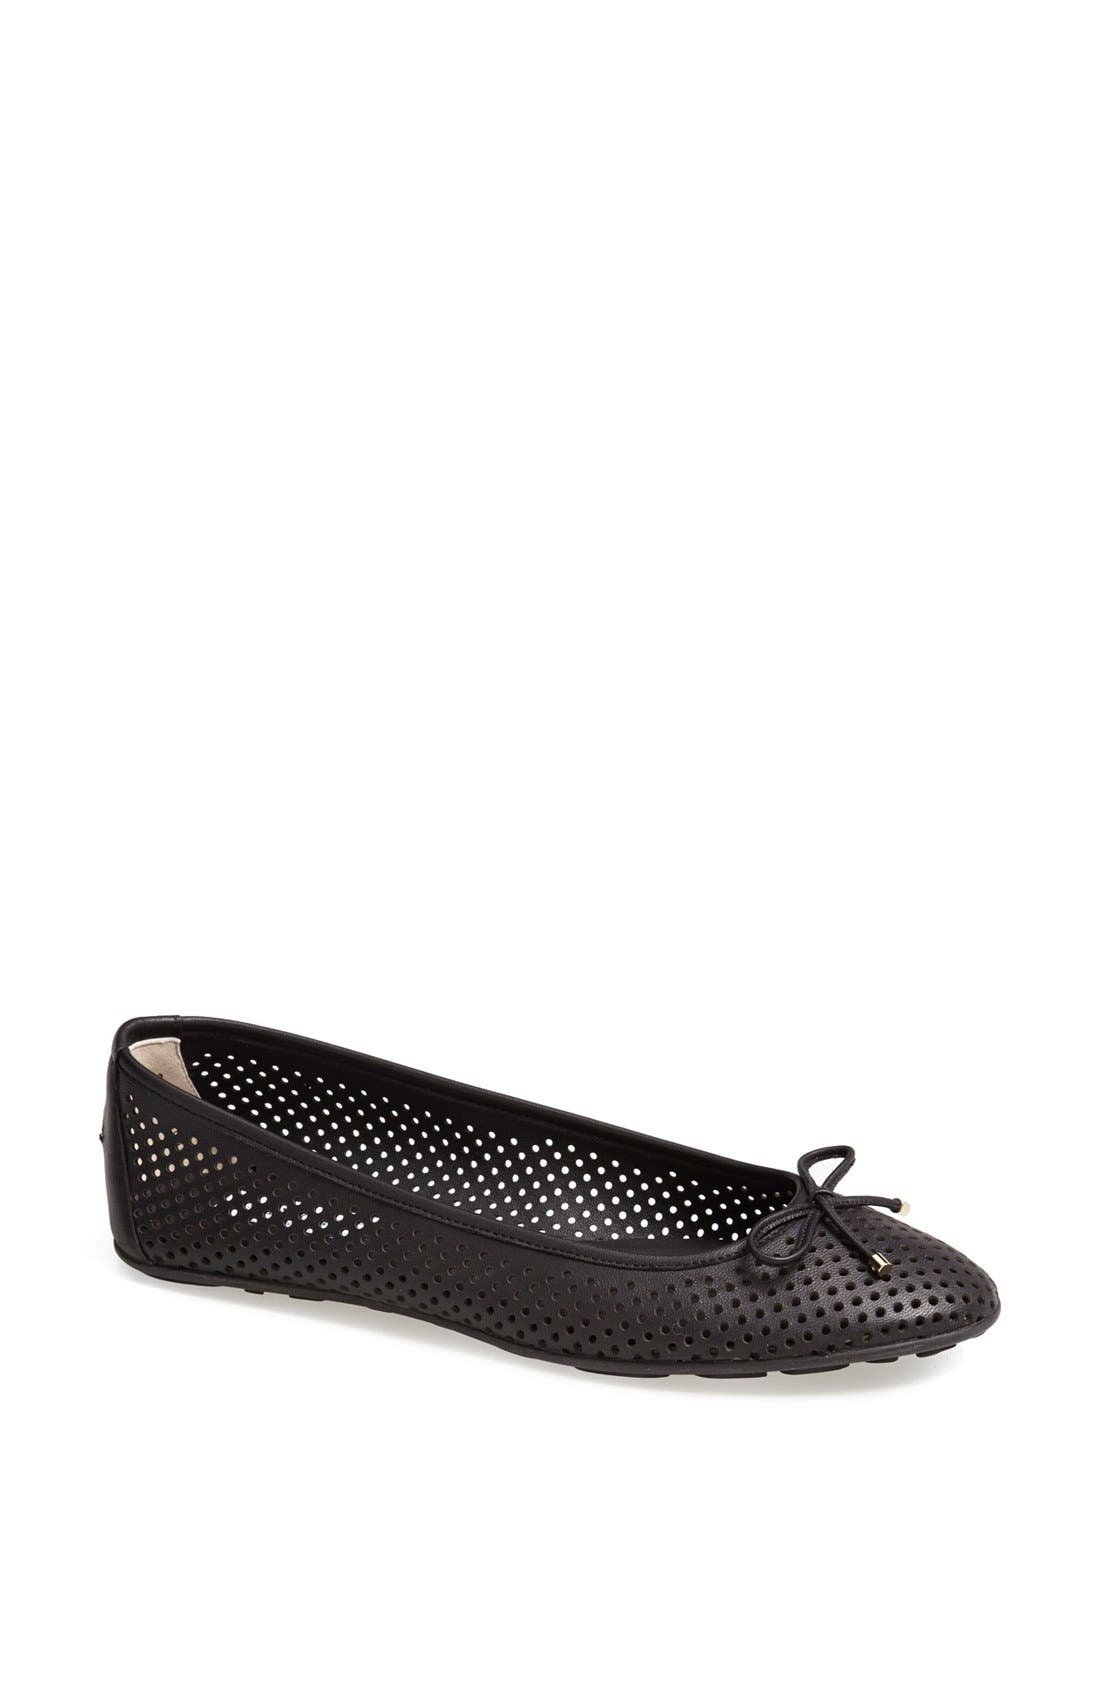 Alternate Image 1 Selected - Jimmy Choo 'Walsh' Ballerina Flat